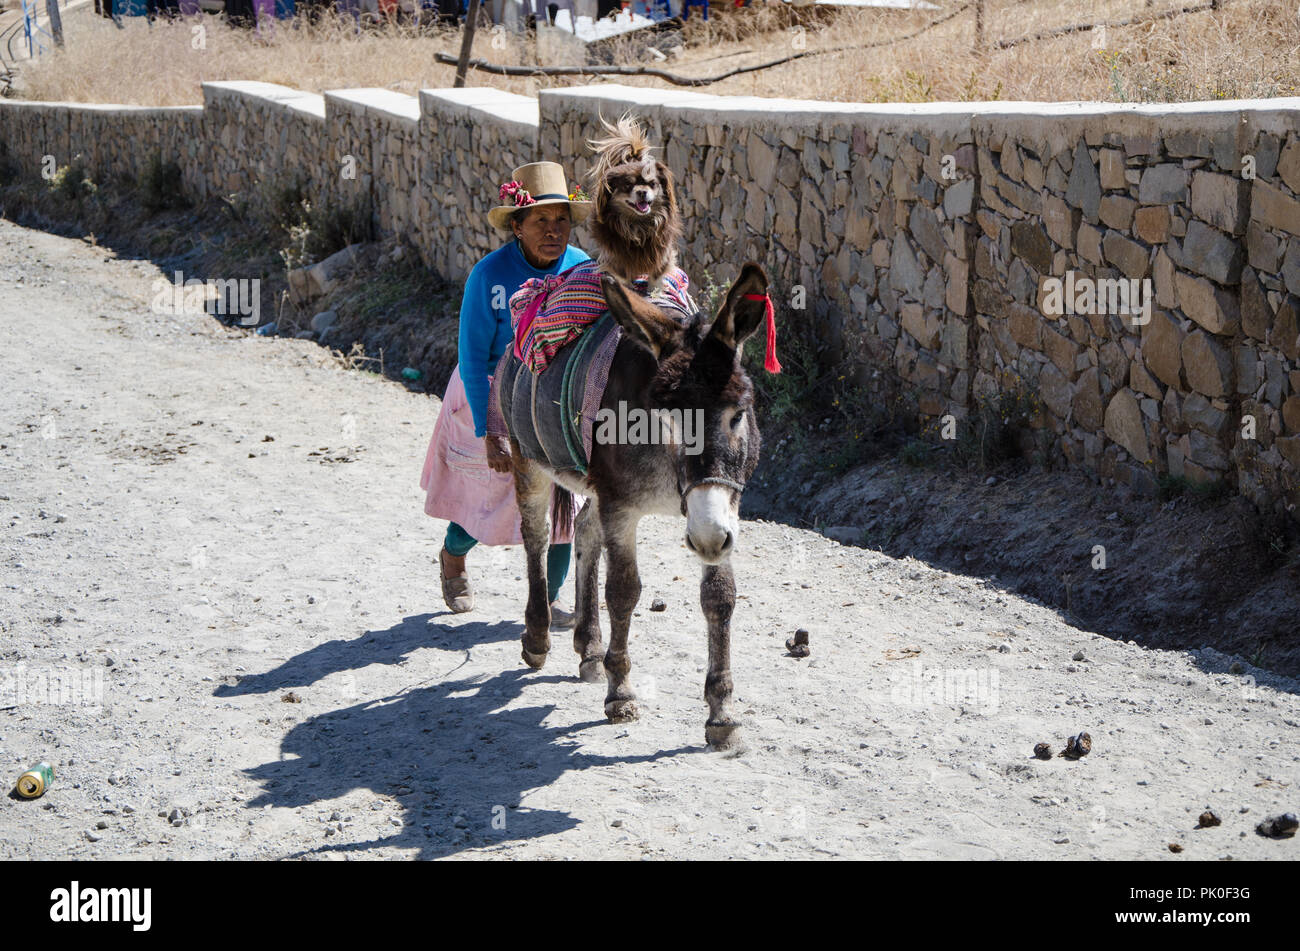 Lima, Peru - 3 SEPTEMBER 2018: Farmers and citizens in the Marcahuasi mountains. Andean woman walking in the mountains with his dog above the donkey - Stock Image